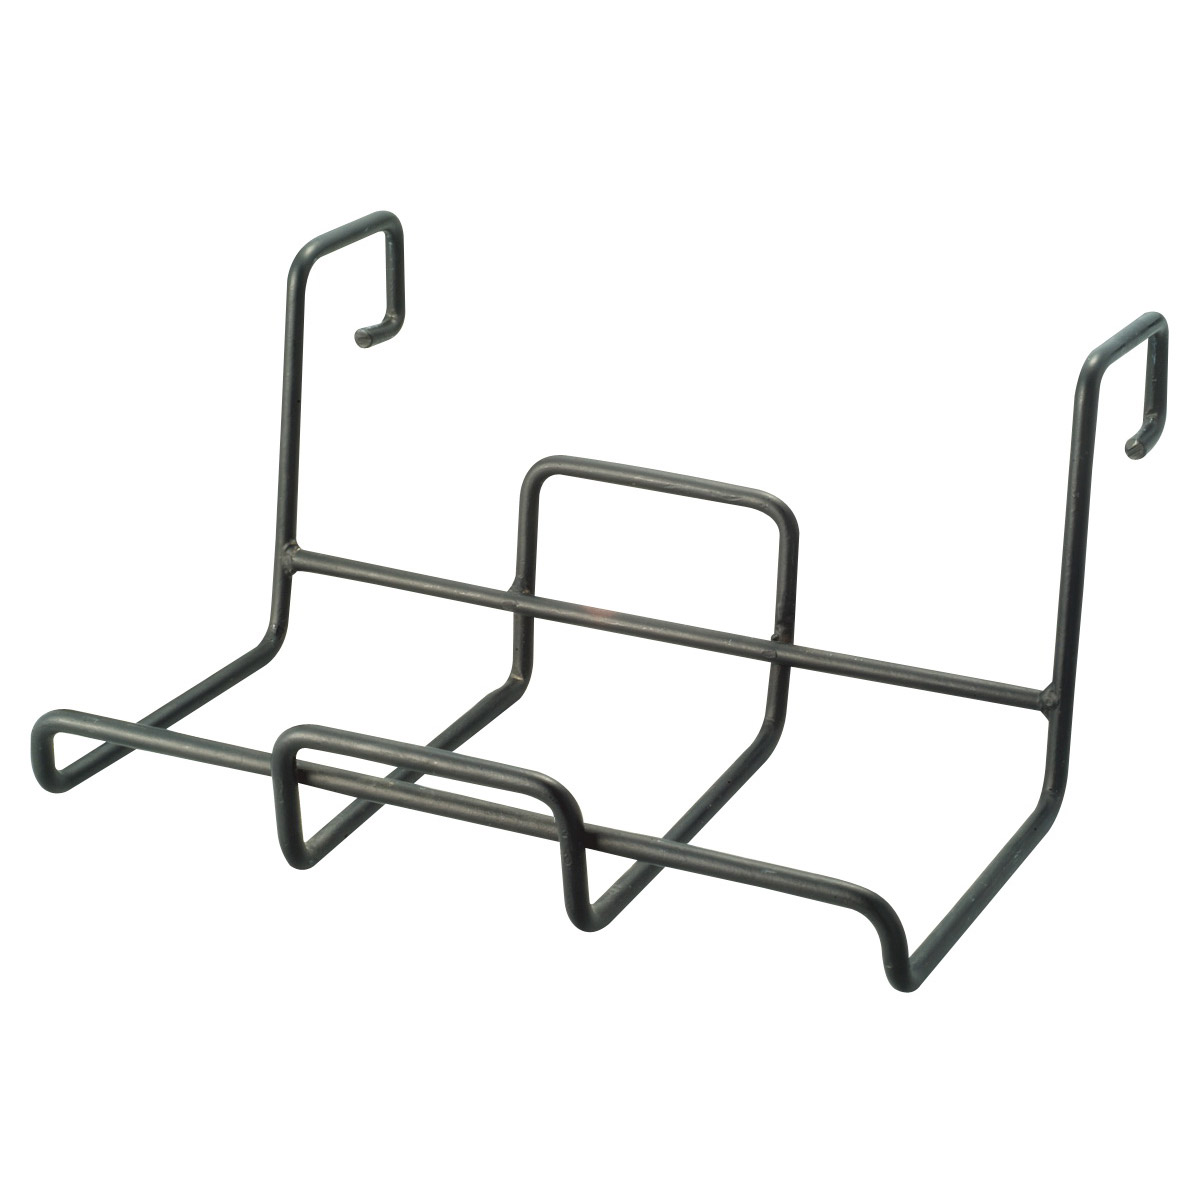 Picture of Landscapers Select GB-4327 Square Planter Holder with Hanger, Steel, Black, Powder coated